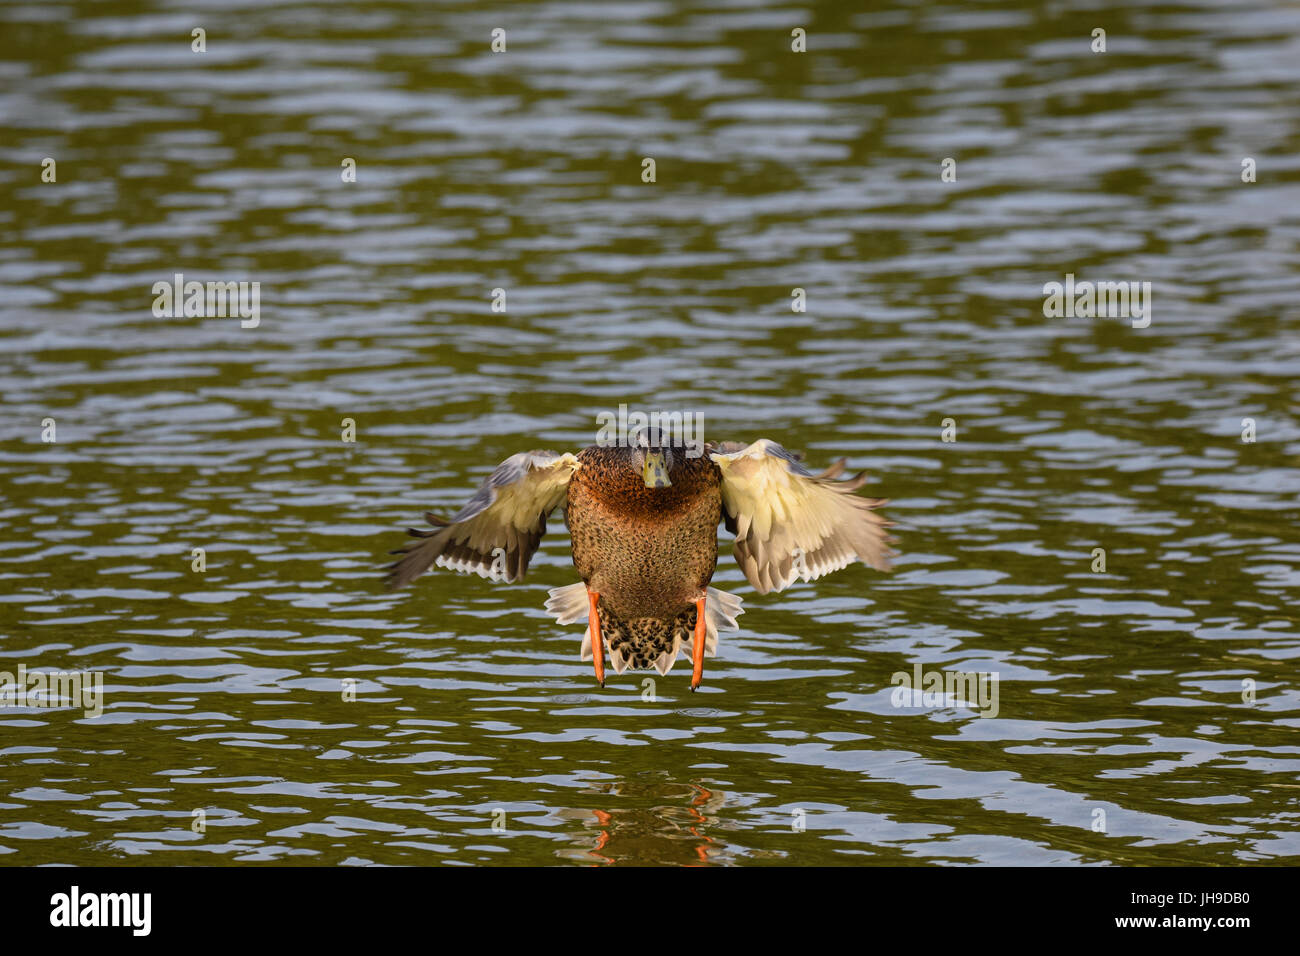 Female mallard duck with wings out stretched coming into land on a lake - Stock Image